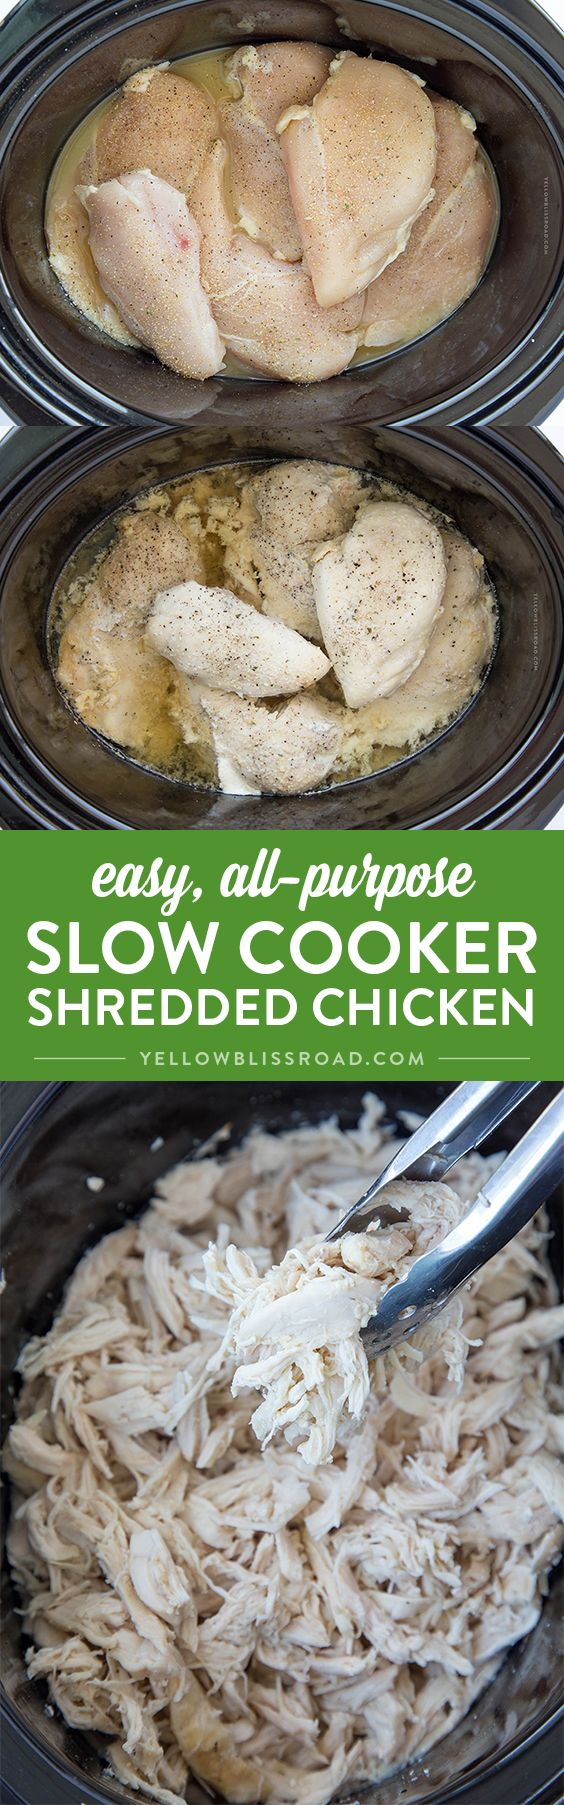 Easy, All-Purpose, Slow Cooker Shredded Chicken